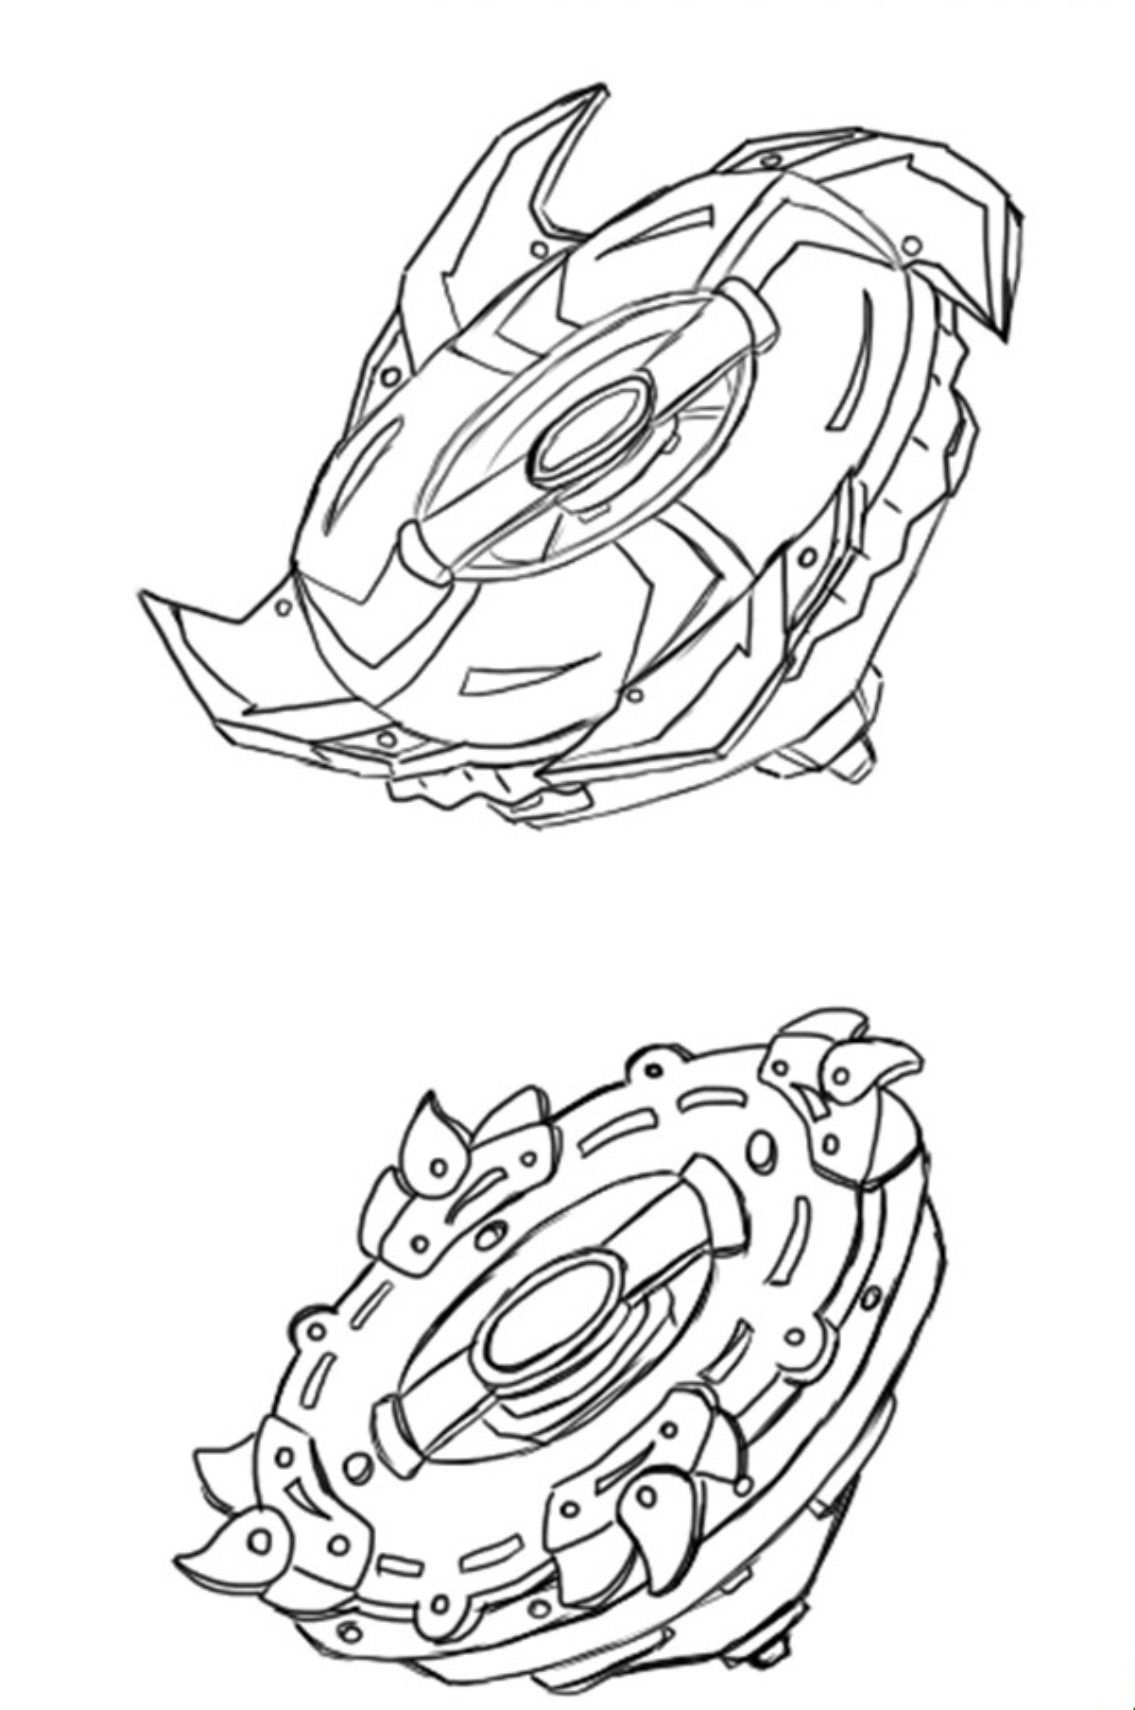 25 Coloring Pages Beyblade With Images Cartoon Coloring Pages